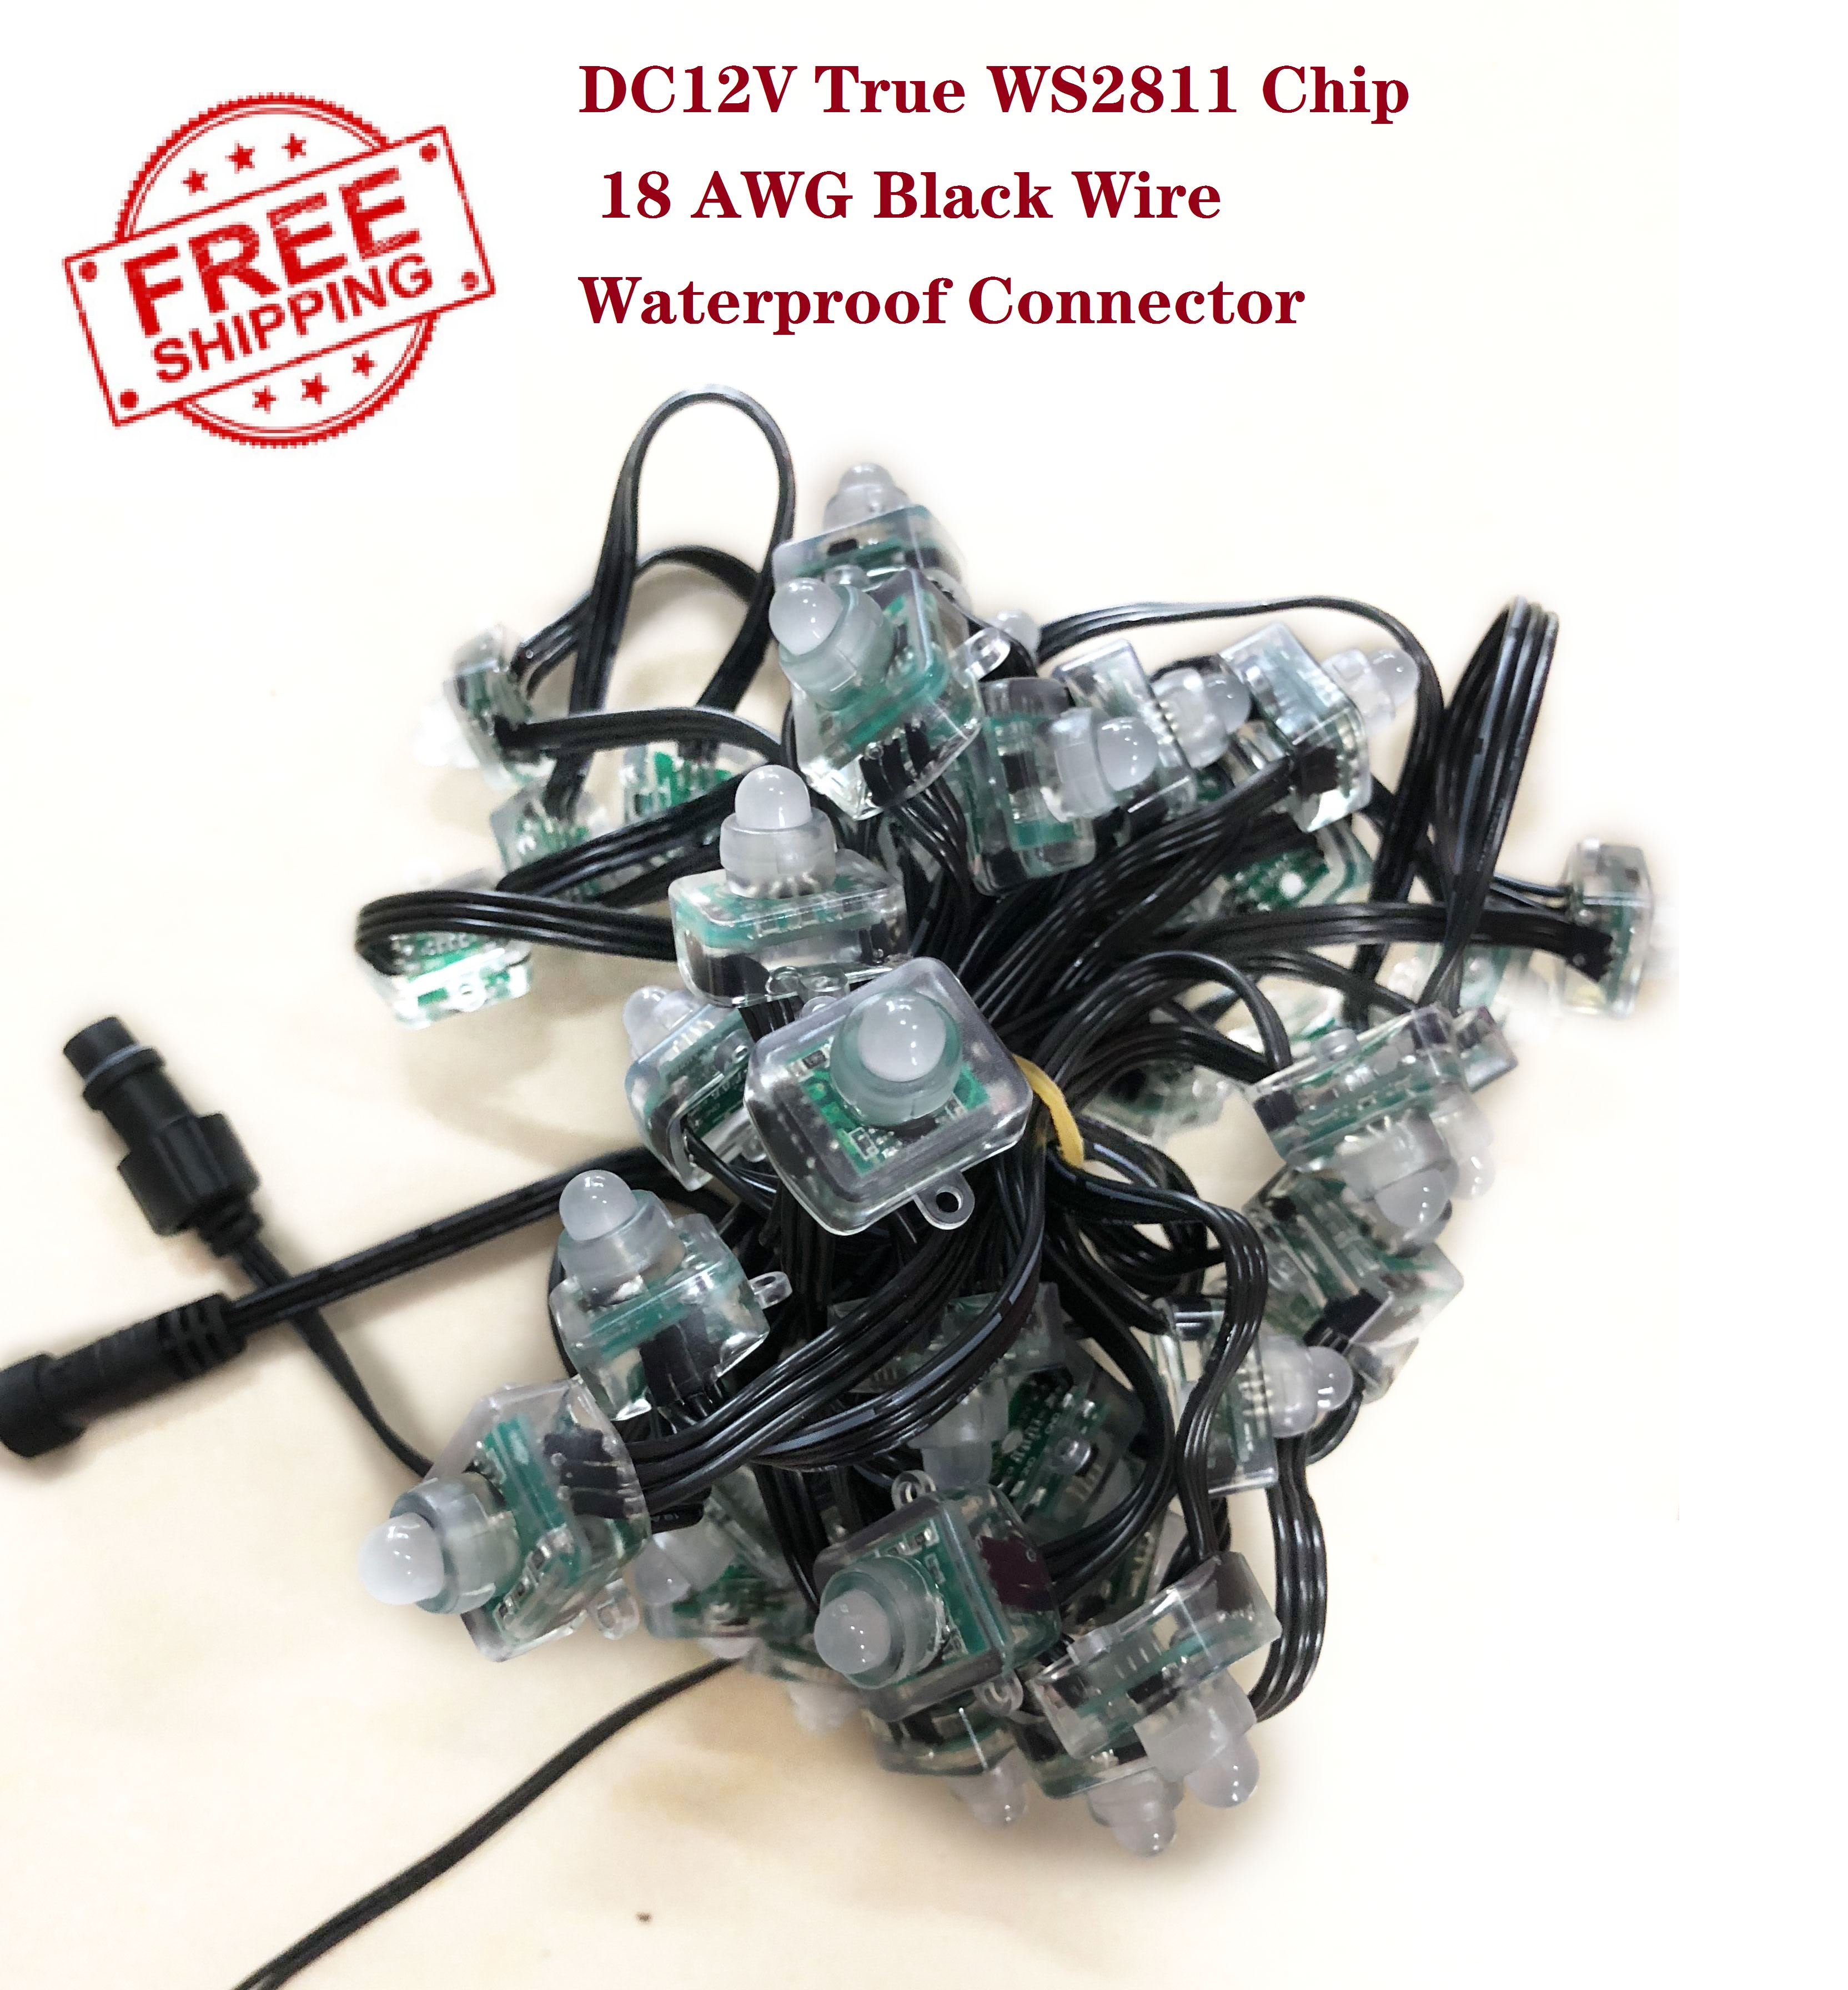 DHL FREE SHIPPING 1000pcs 50ct DC12V WS2811 RGB LED Pixel Black Wire 18awg with ray wu/daniel/xconnect connector